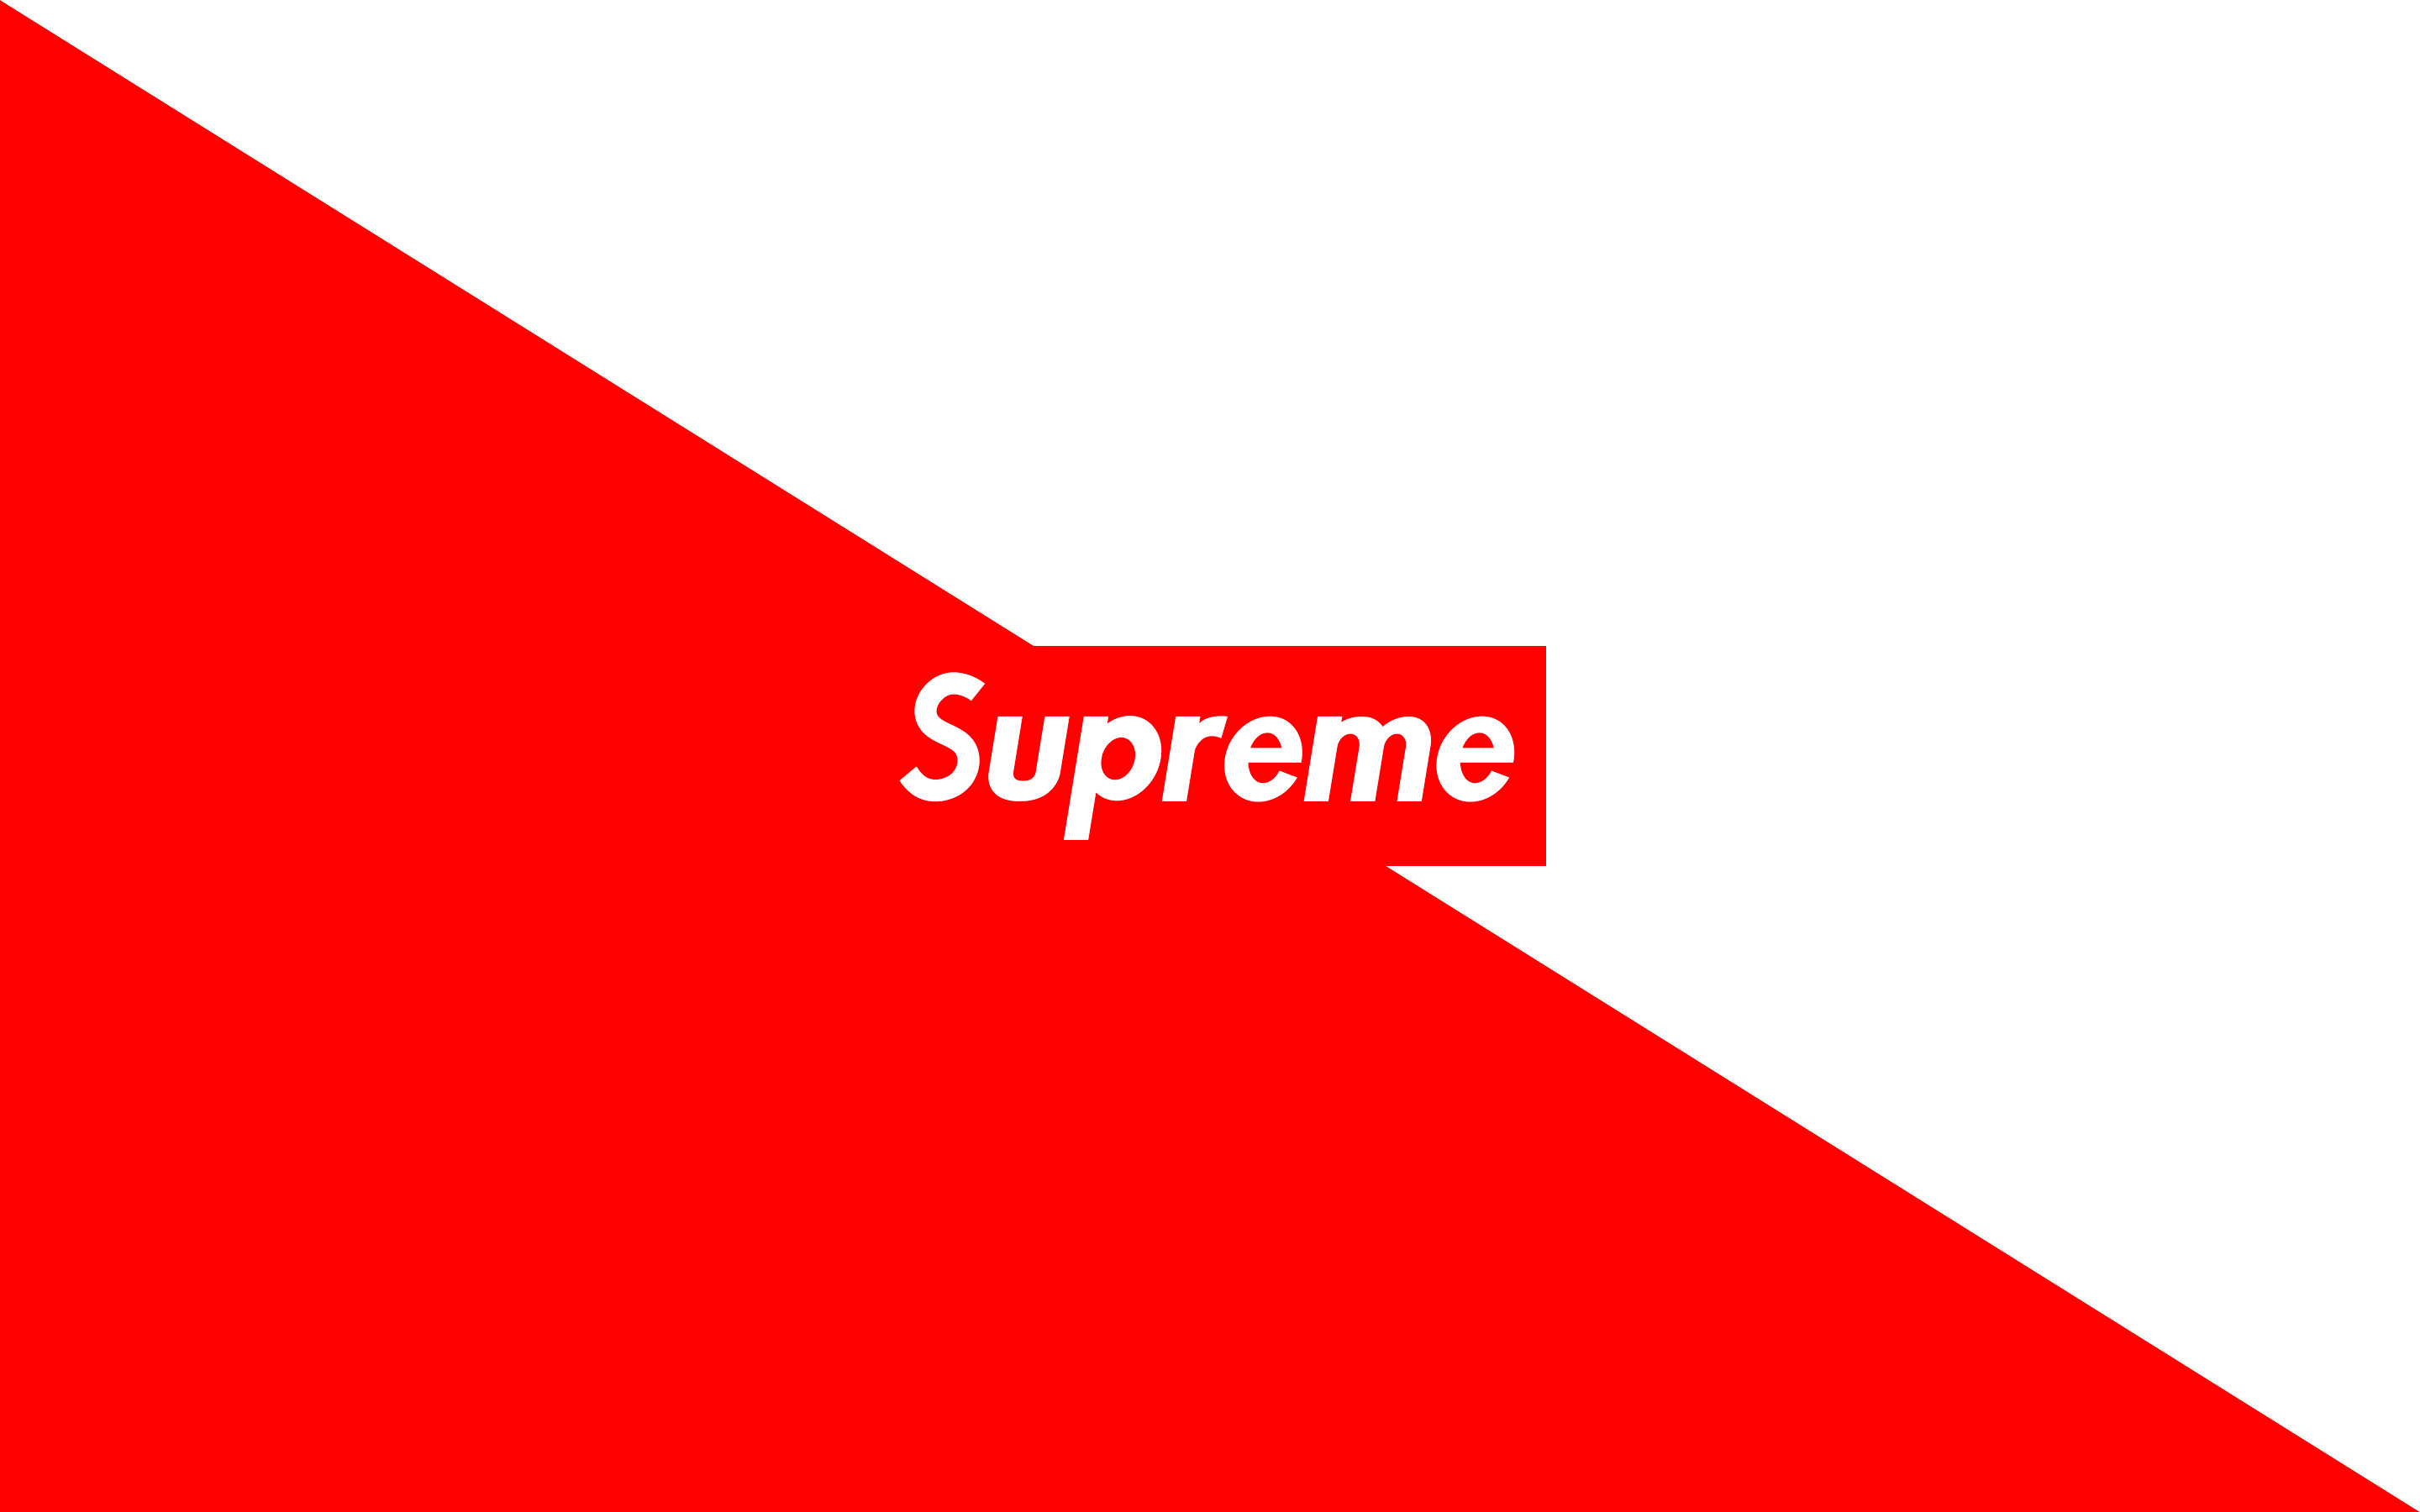 Supreme Wallpaper 73 images 2880x1800